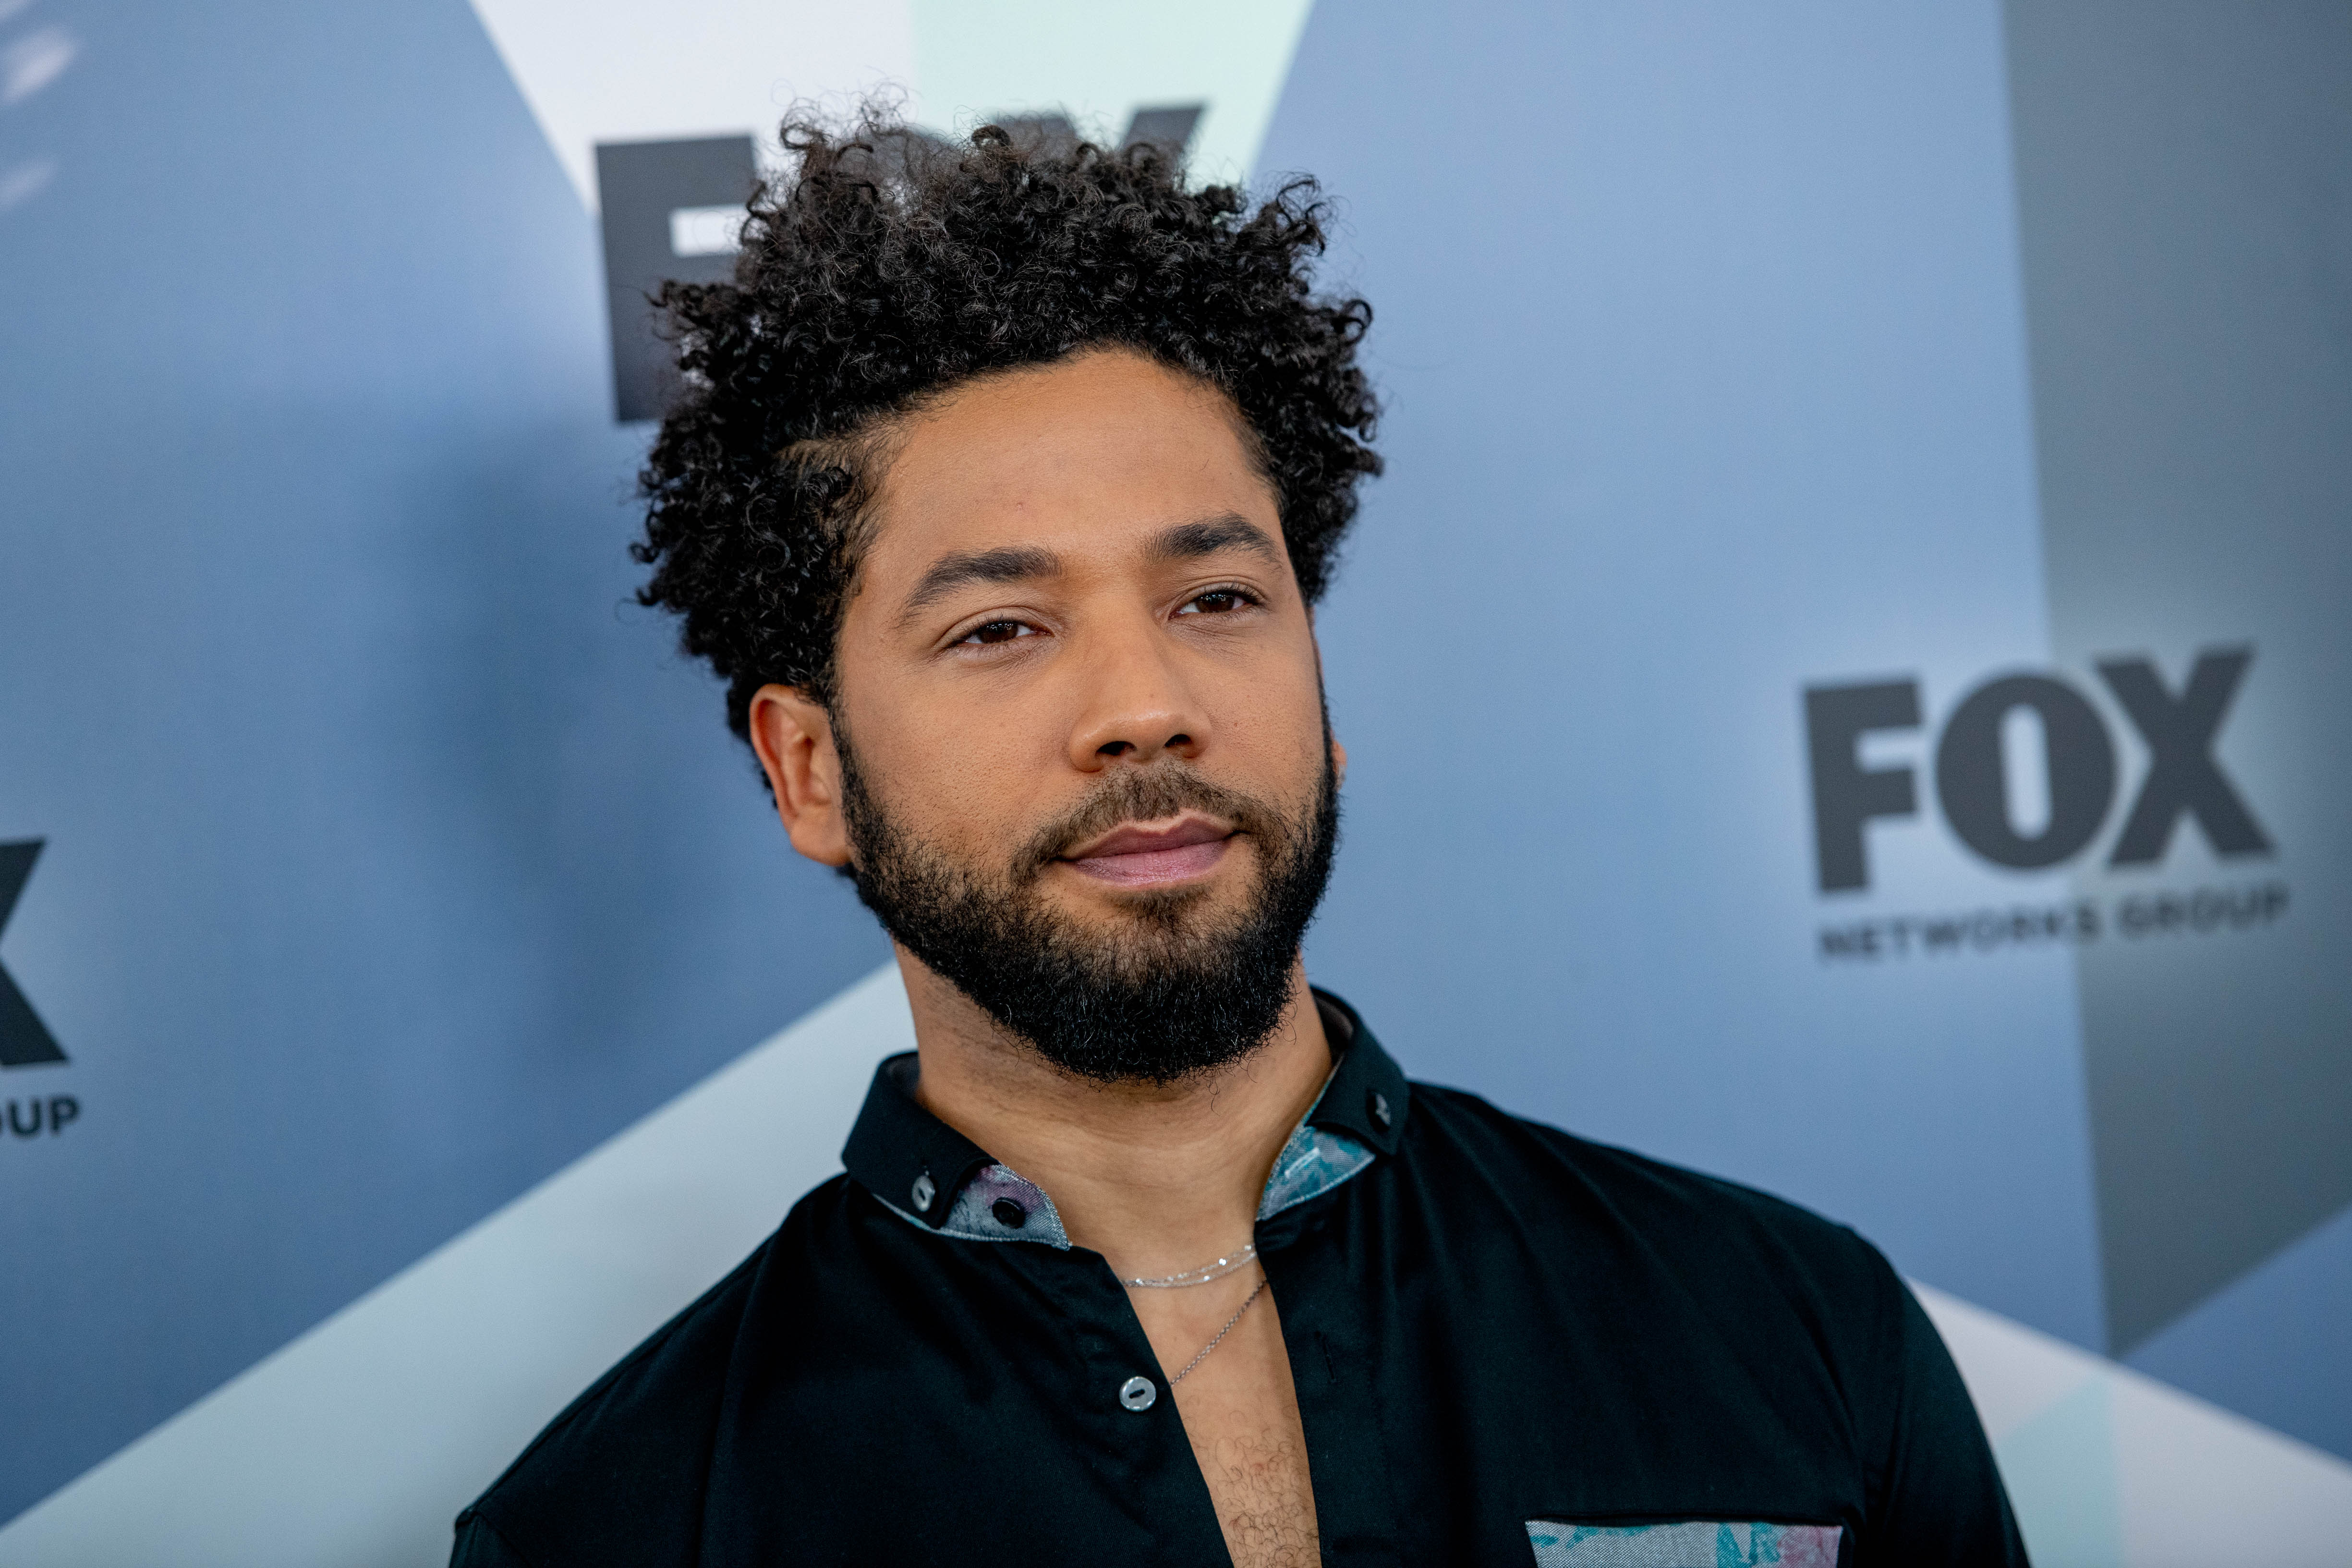 Jussie Smollett attends the 2018 Fox Network Upfront, May, 2018. | Photo: GettyImages